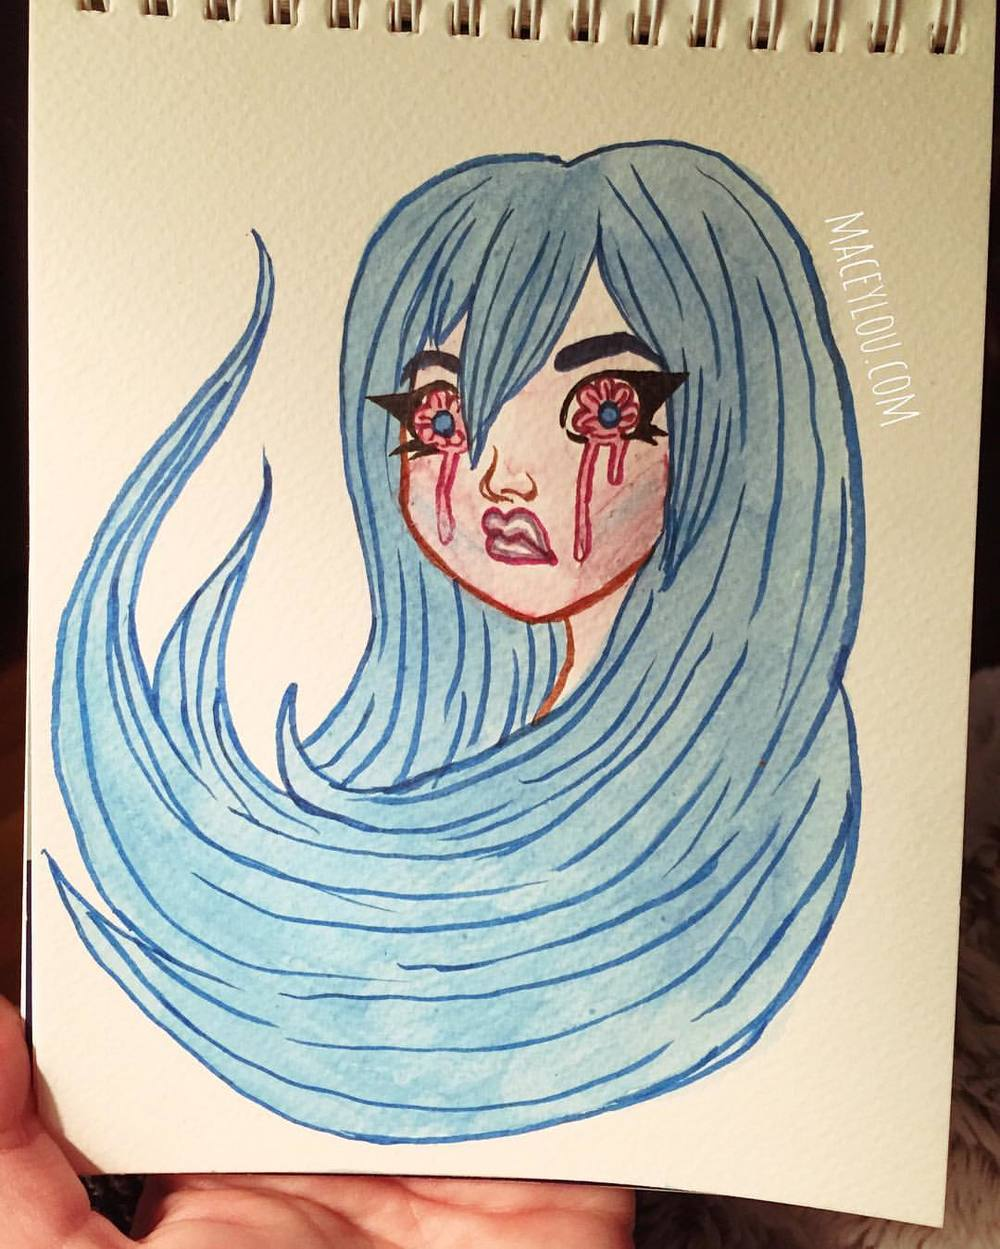 sad loss family tears crybaby cry baby crying girl kawaii cute pretty blue hair watercolor illustration painting.jpg